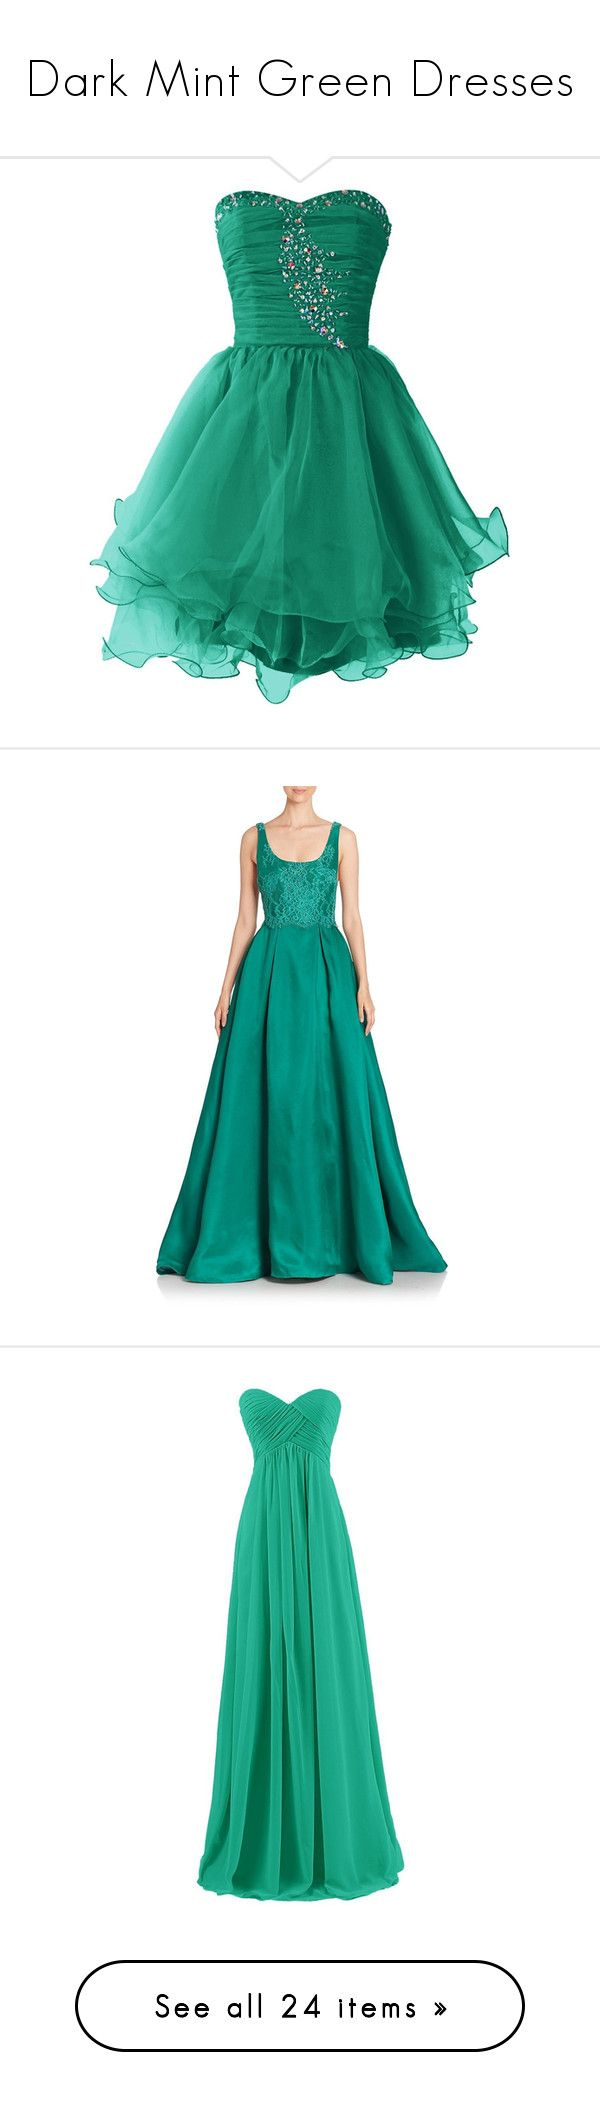 """""""Dark Mint Green Dresses"""" by tegan-b-riley on Polyvore featuring dresses, short dresses, cocktail dresses, vestidos, prom dresses, homecoming dresses, mini prom dresses, sweetheart neckline prom dresses, cocktail prom dress and gowns"""